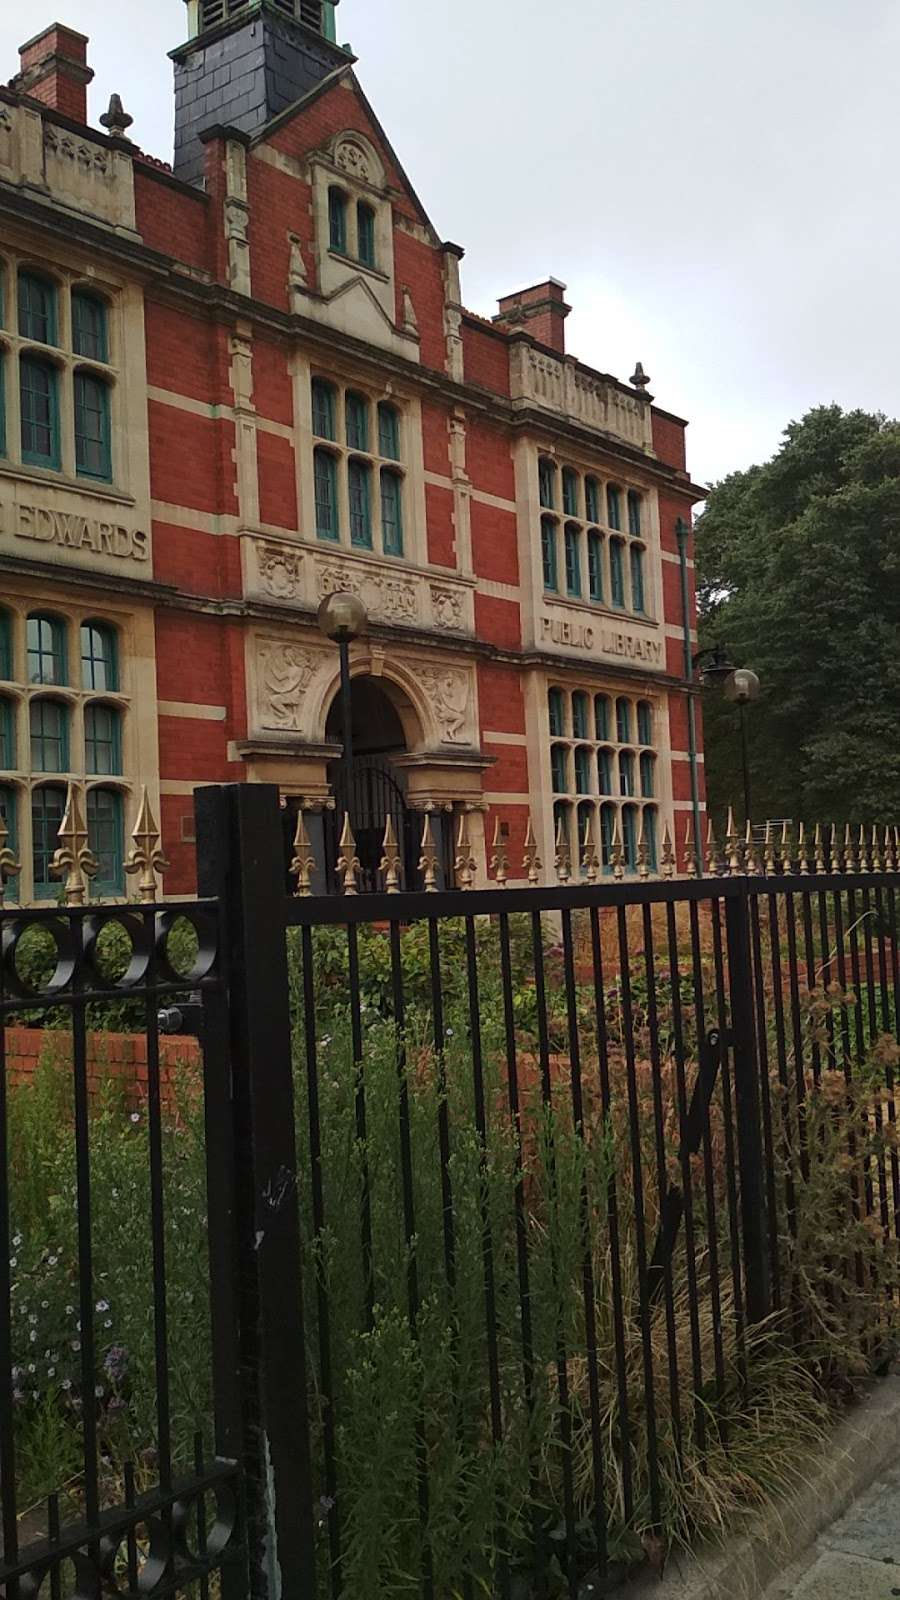 Passmore Edwards Public Library - library  | Photo 7 of 10 | Address: 207 Plashet Grove, London E6 1BT, UK